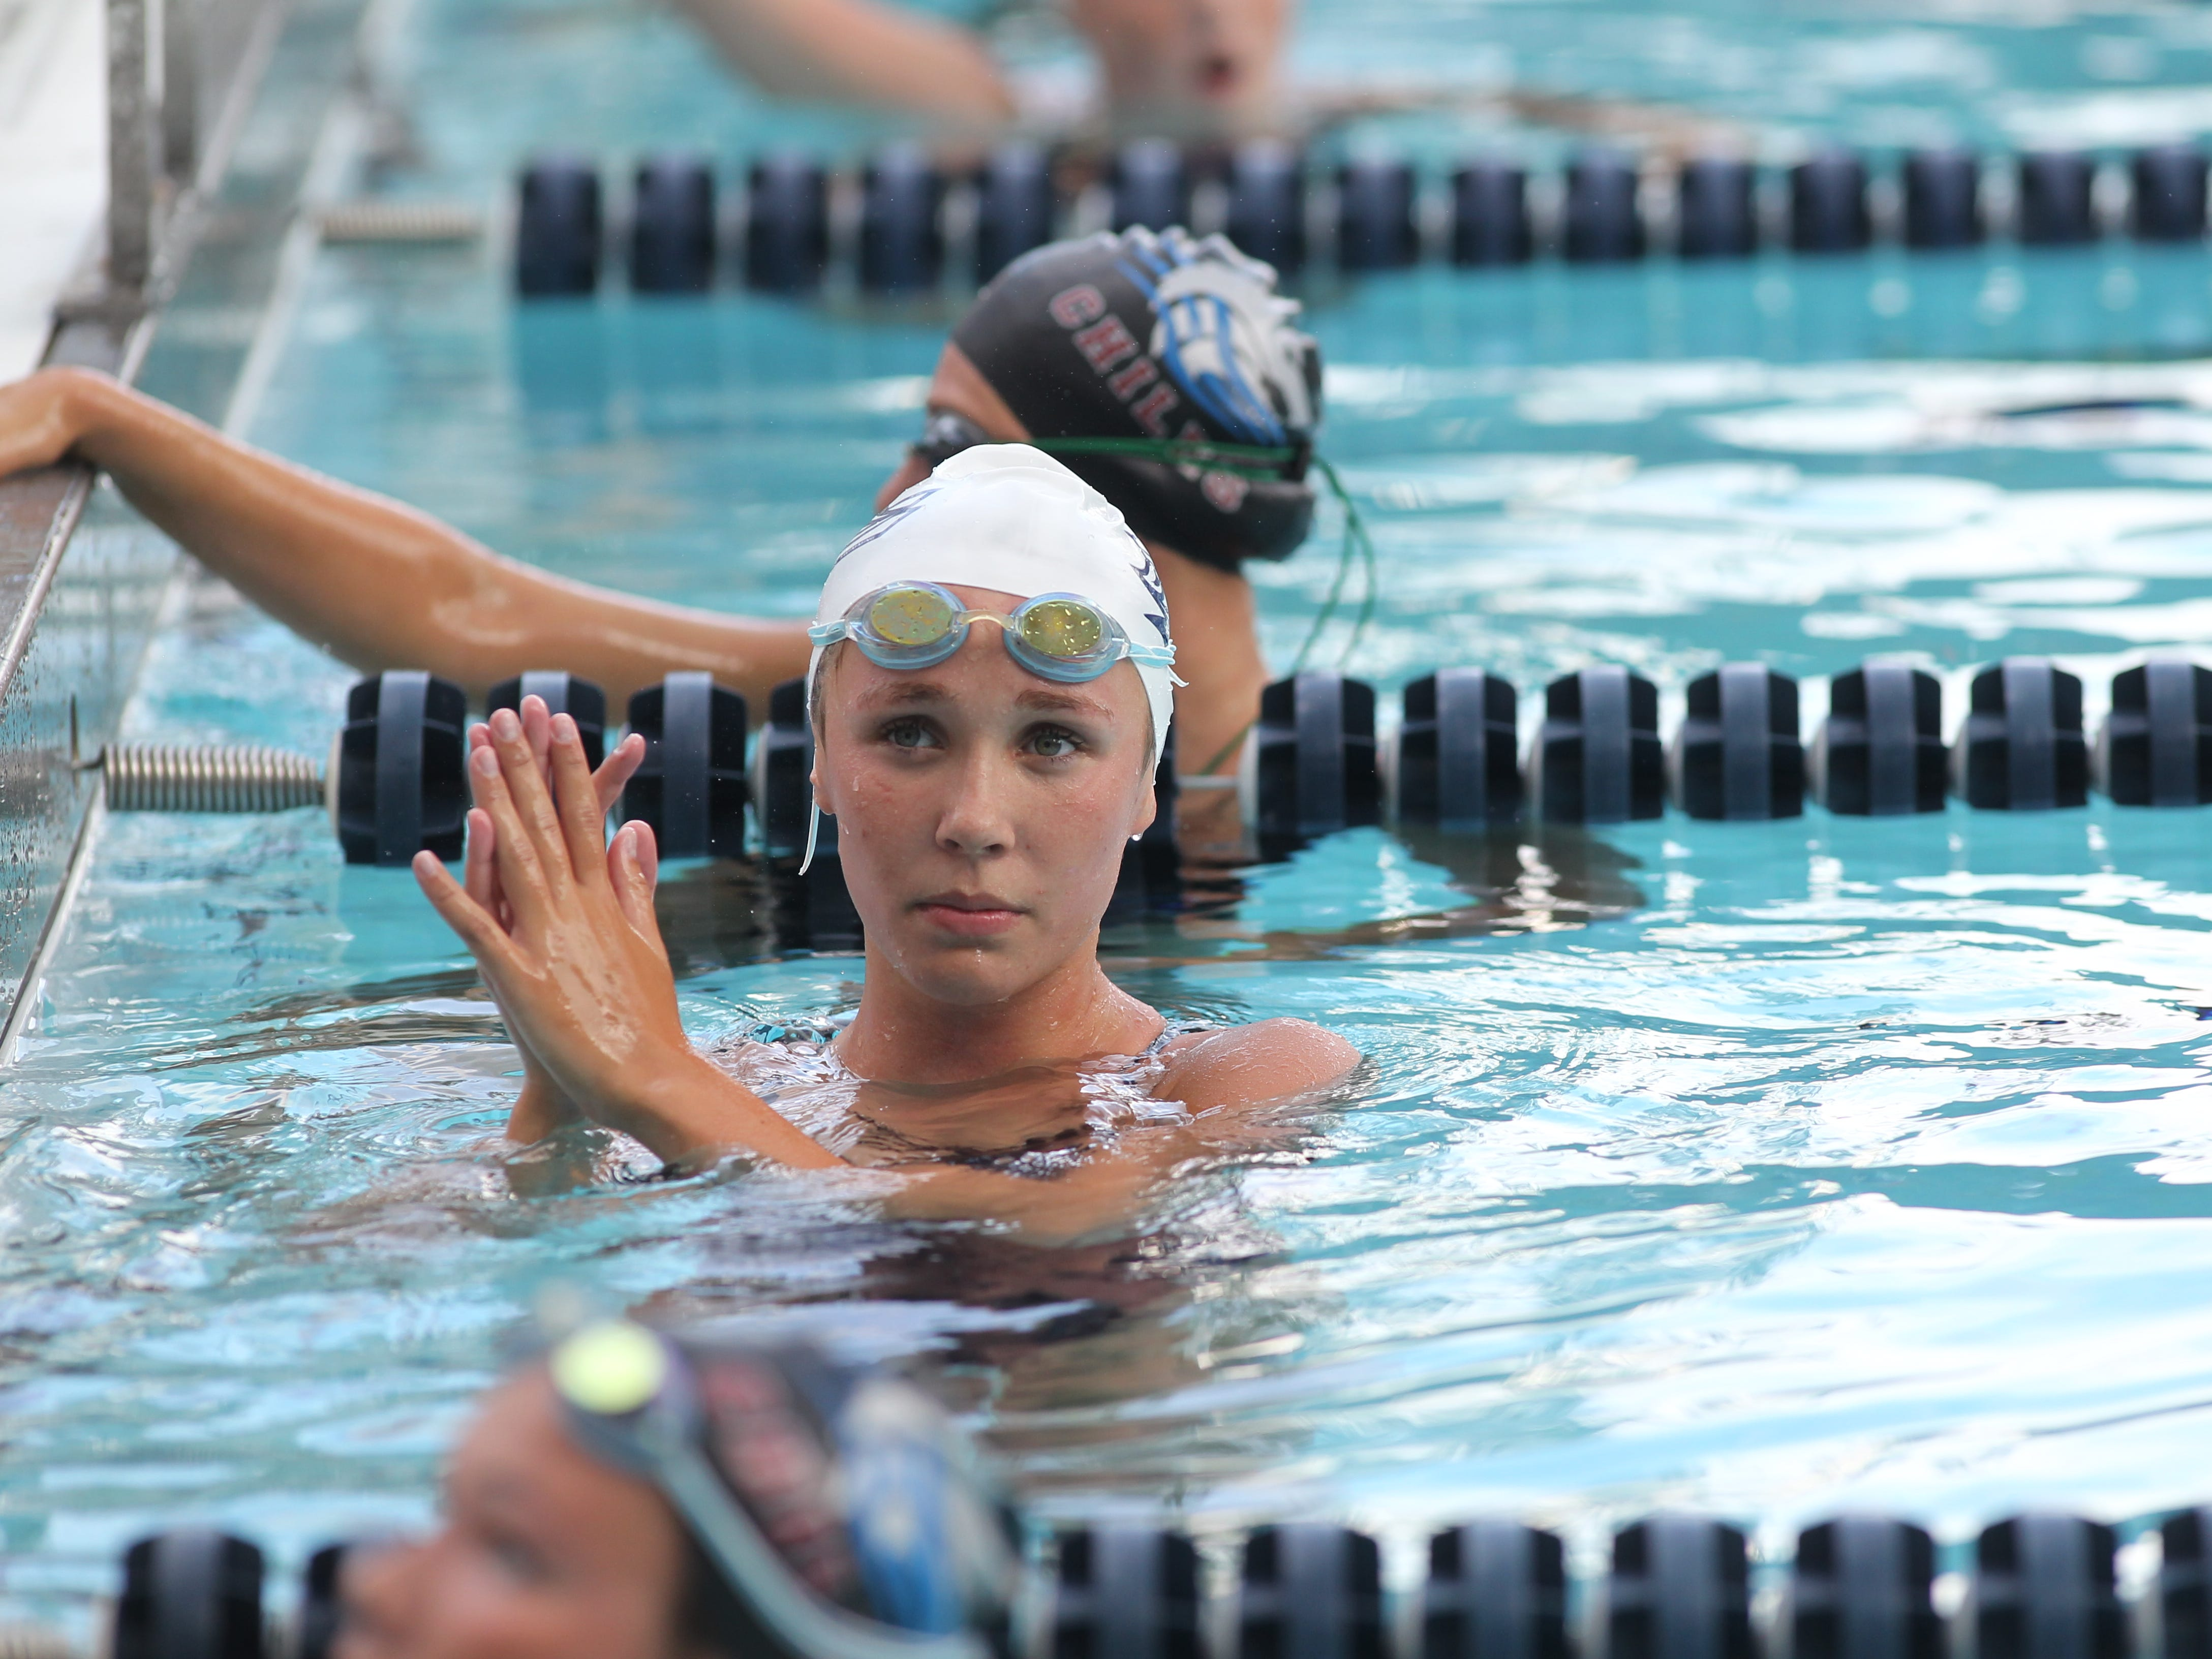 Maclay's Meg Howell after a win in the 200 freestyle during a recent swim meet.